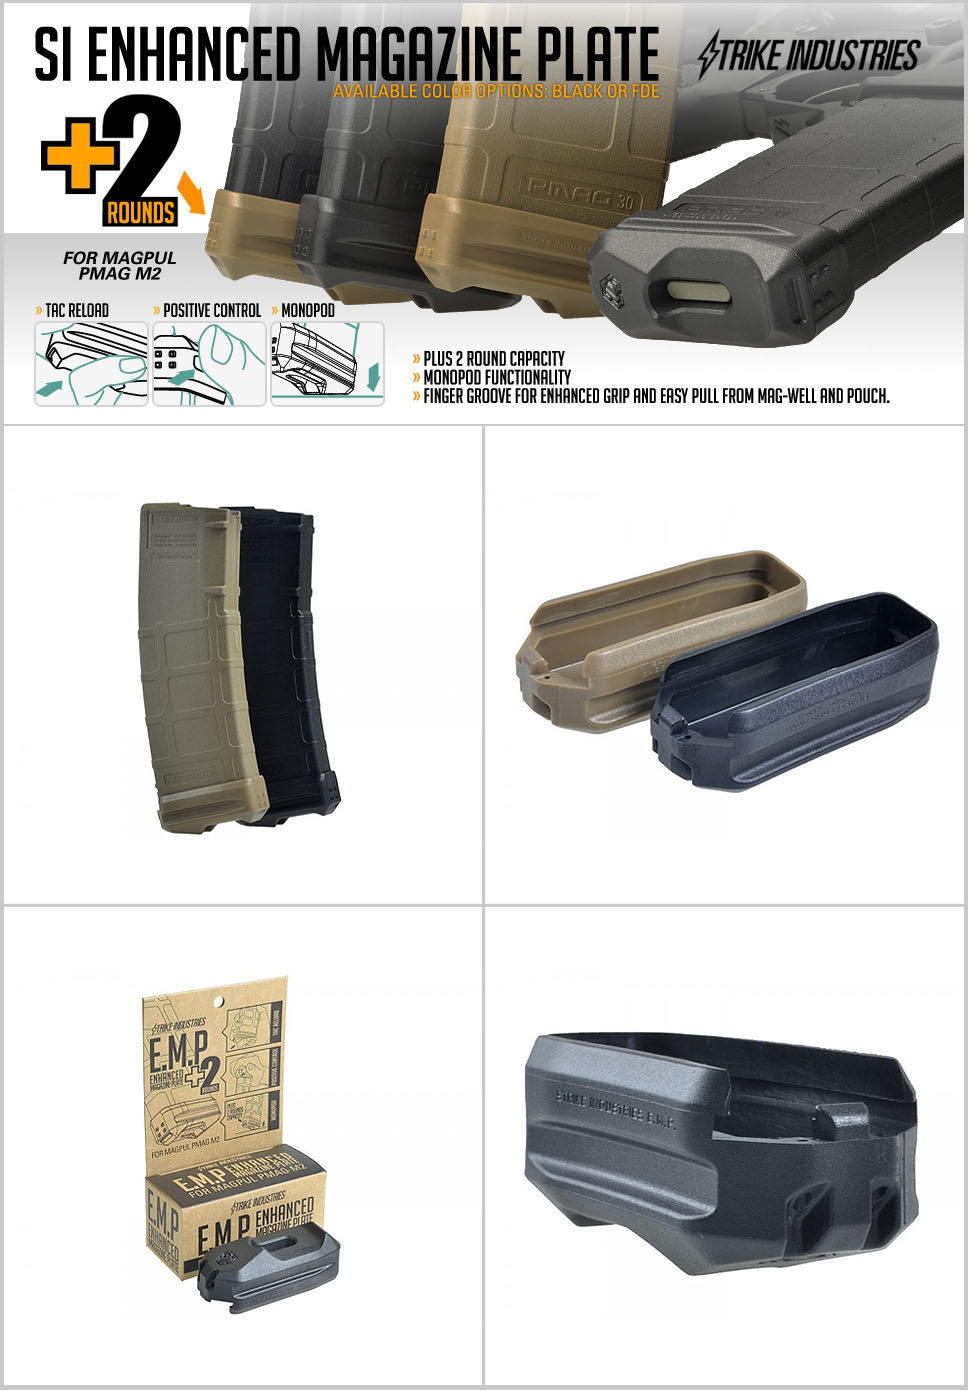 Strike Industries SI Ehanced Magazine Plate EMP Plus 2 Round Capacity for MagPul PMAG M2 30 Round AR Rifle Magazine DefenseReview.com DR 1 Strike Industries SI Enhanced Magazine Plate (EMP) +2 Round Magazine Extension for MagPul PMAG 30 Polymer AR 15/M4/M4A1 Carbine/Rifle Magazine